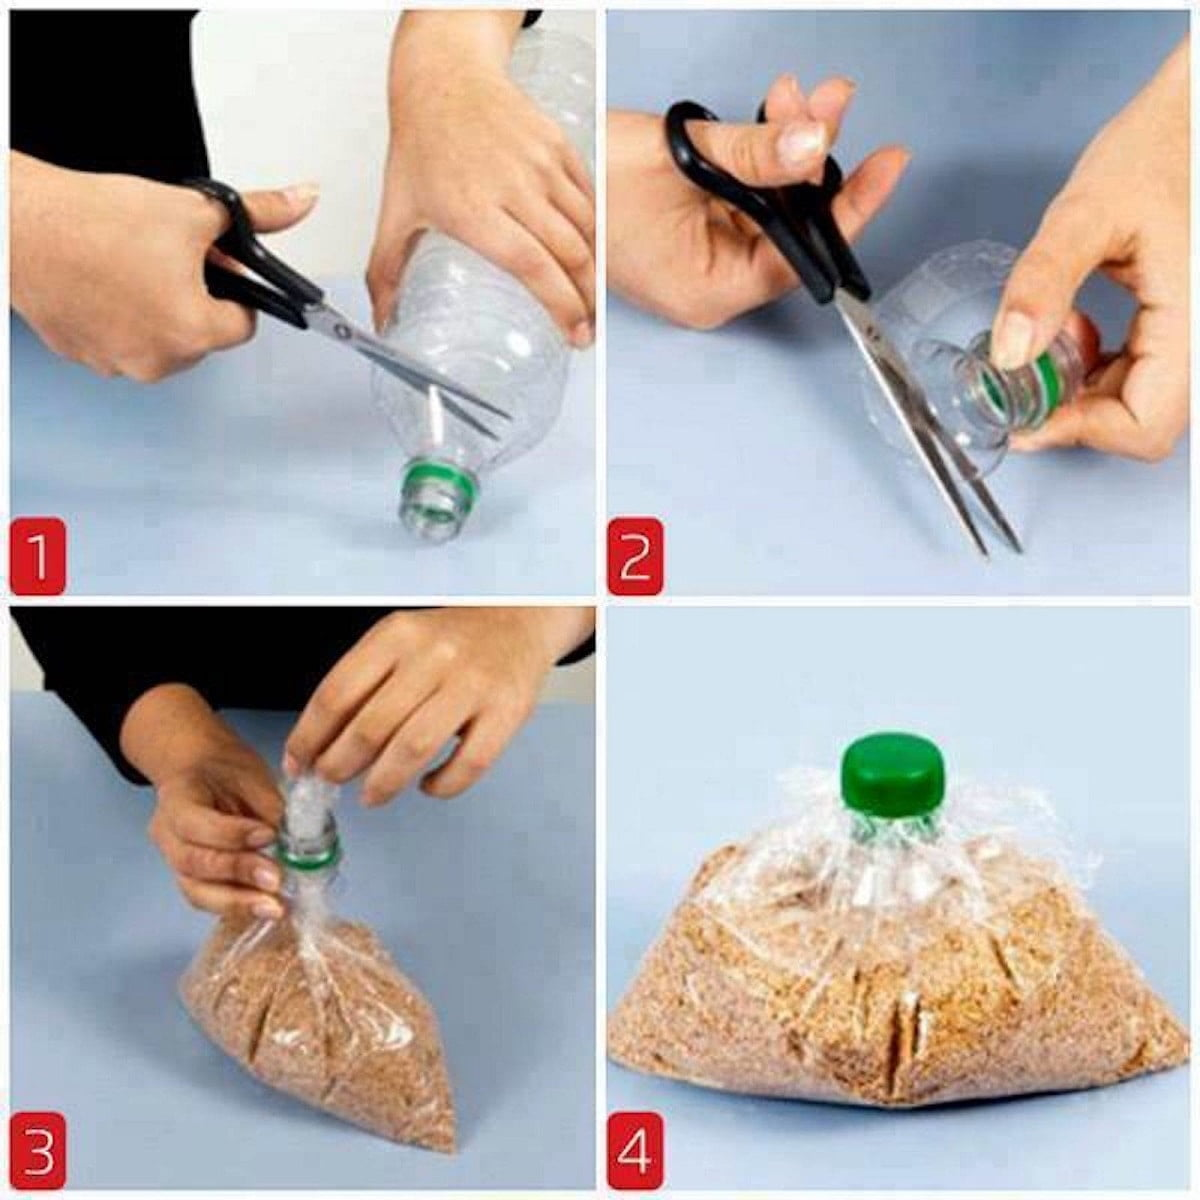 How to seal bags